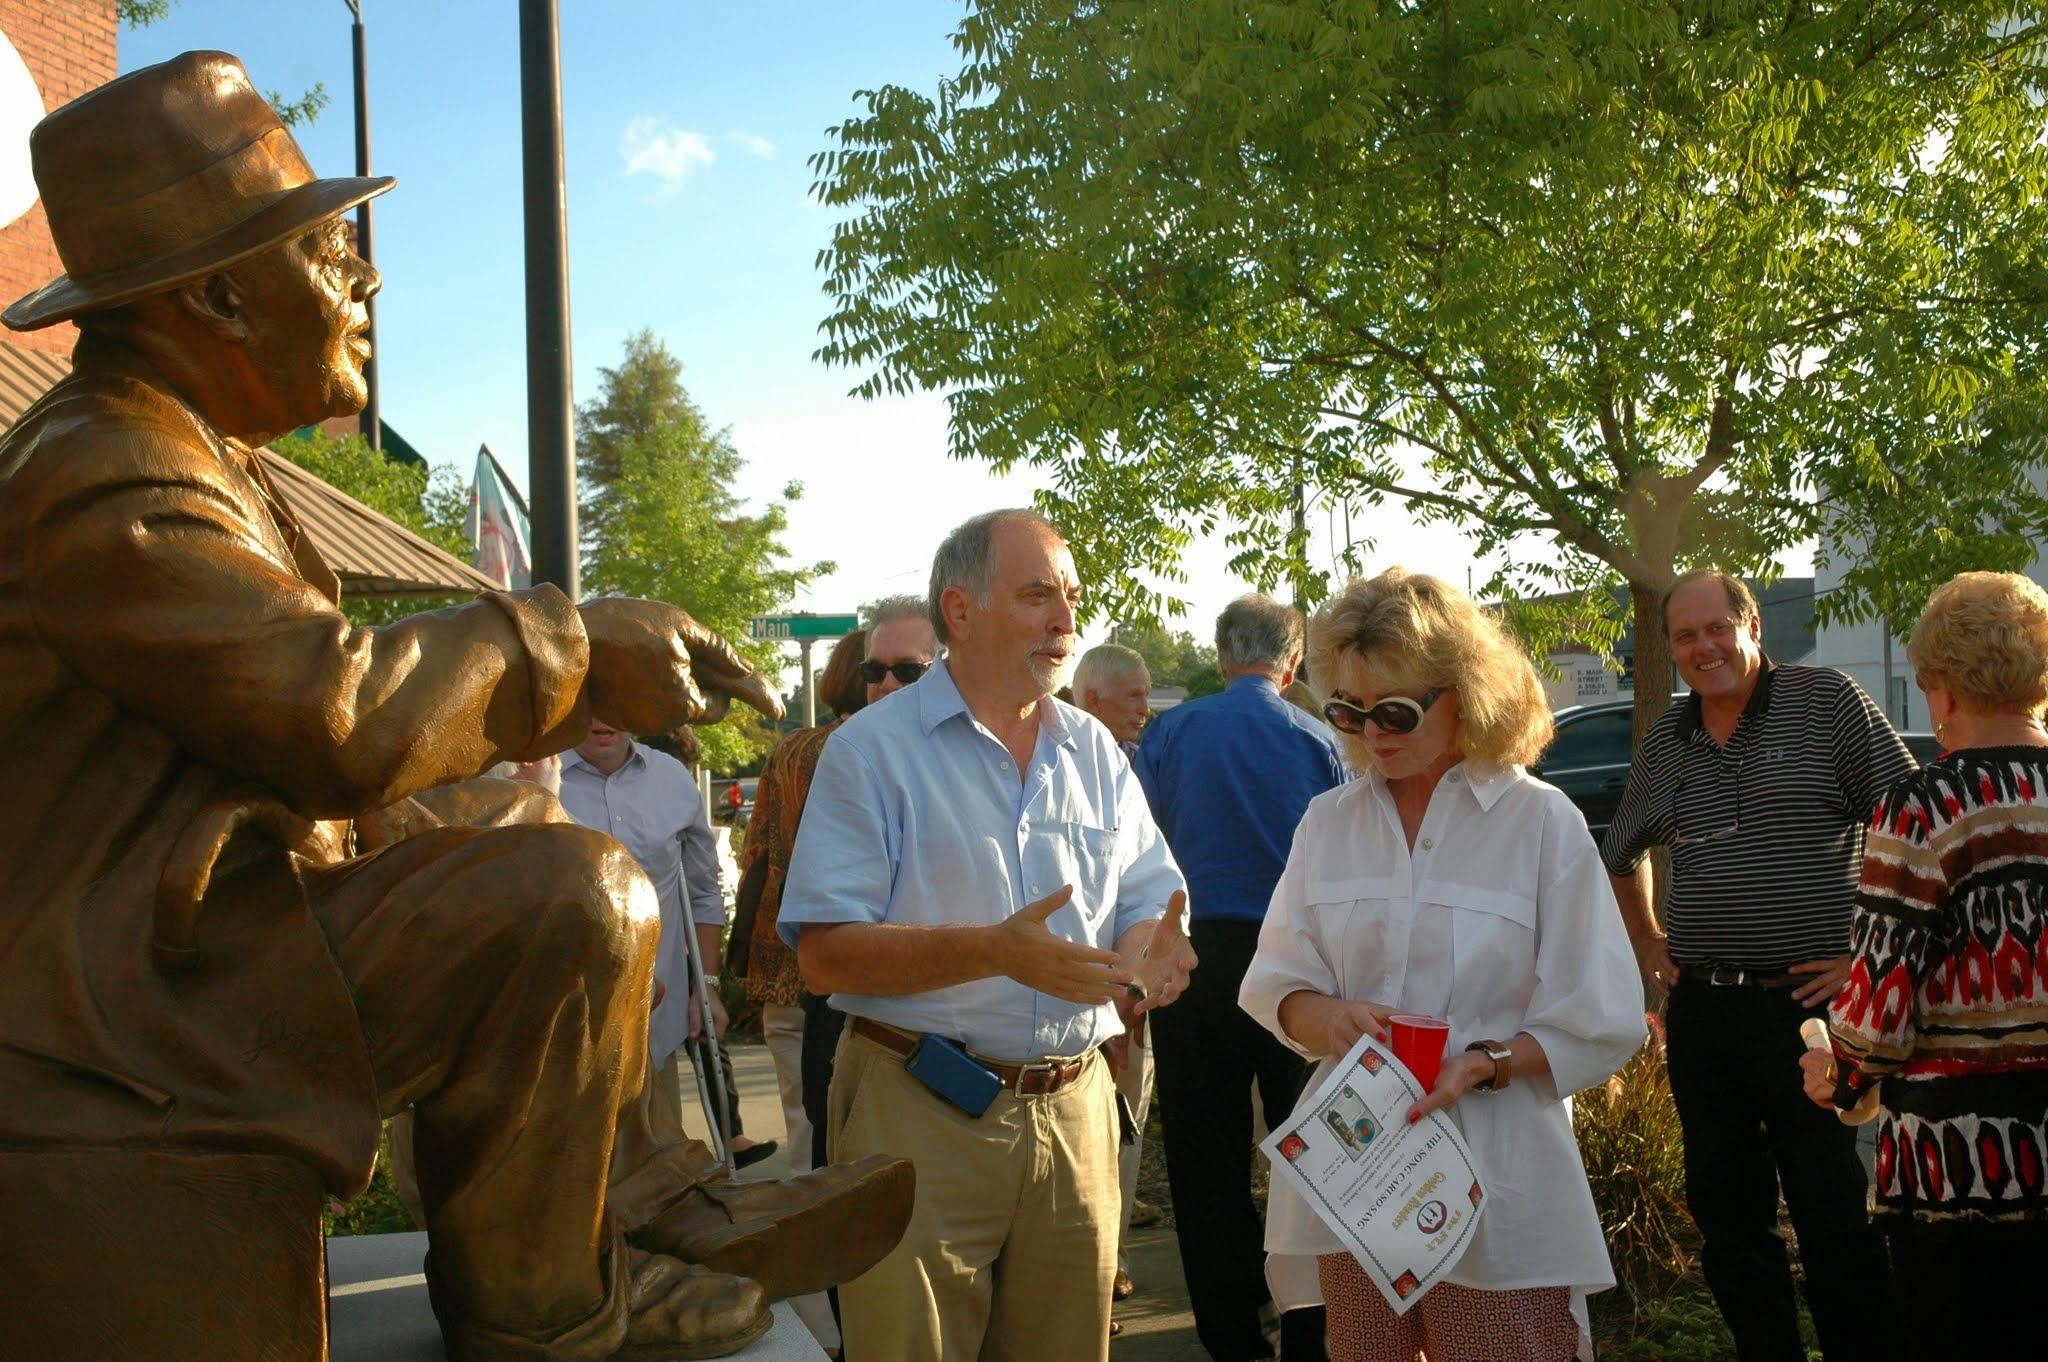 After the unveiling of the Huey Cooper sculpture in Lake City, SC